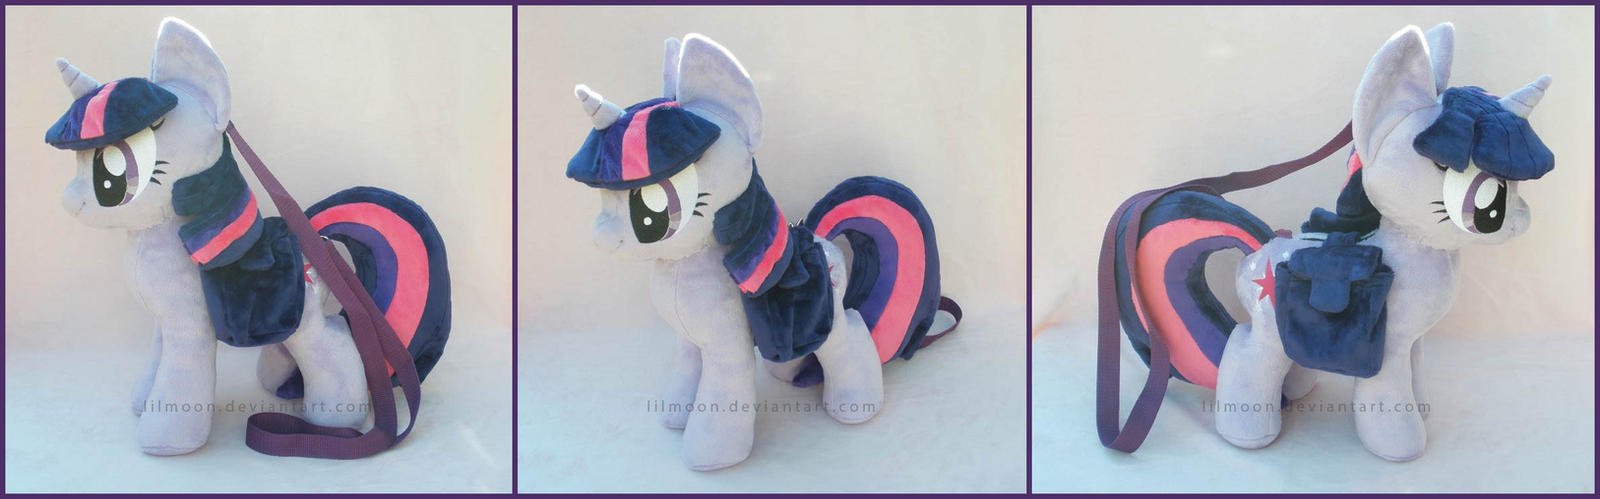 Twilight Sparkle Bag by LiLMoon